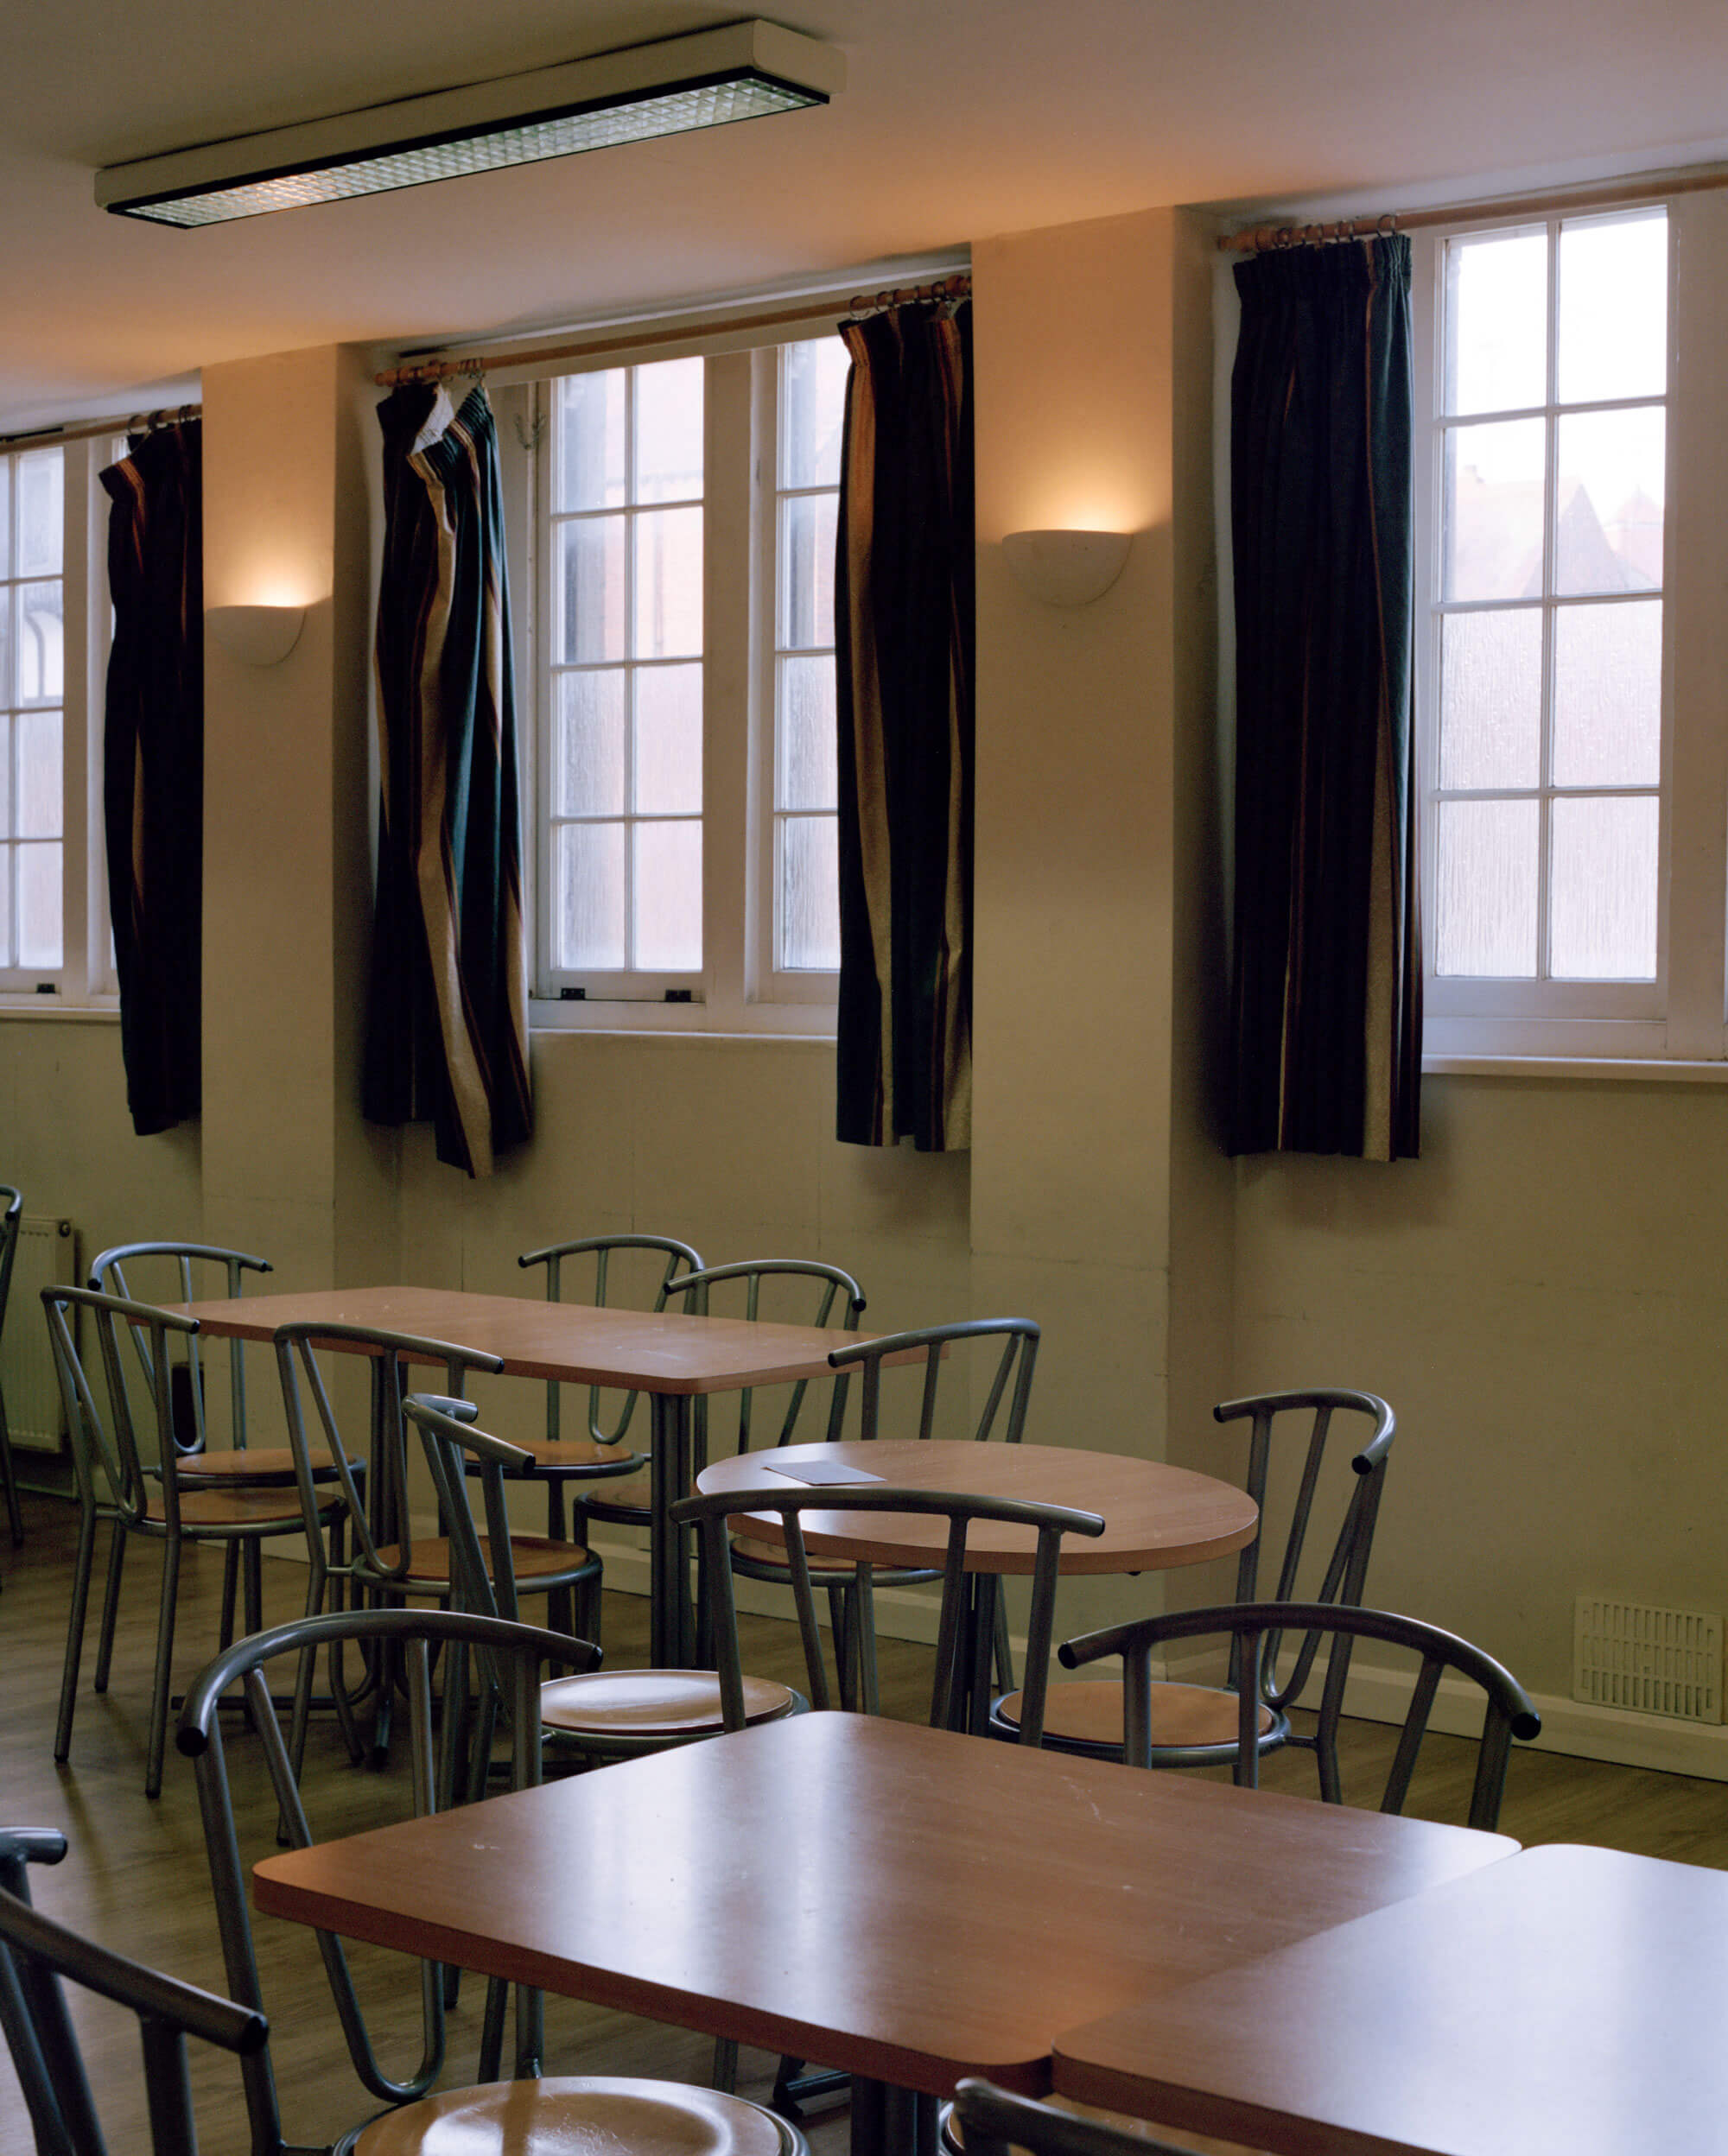 church mess hall in daylight with lights on and red curtains